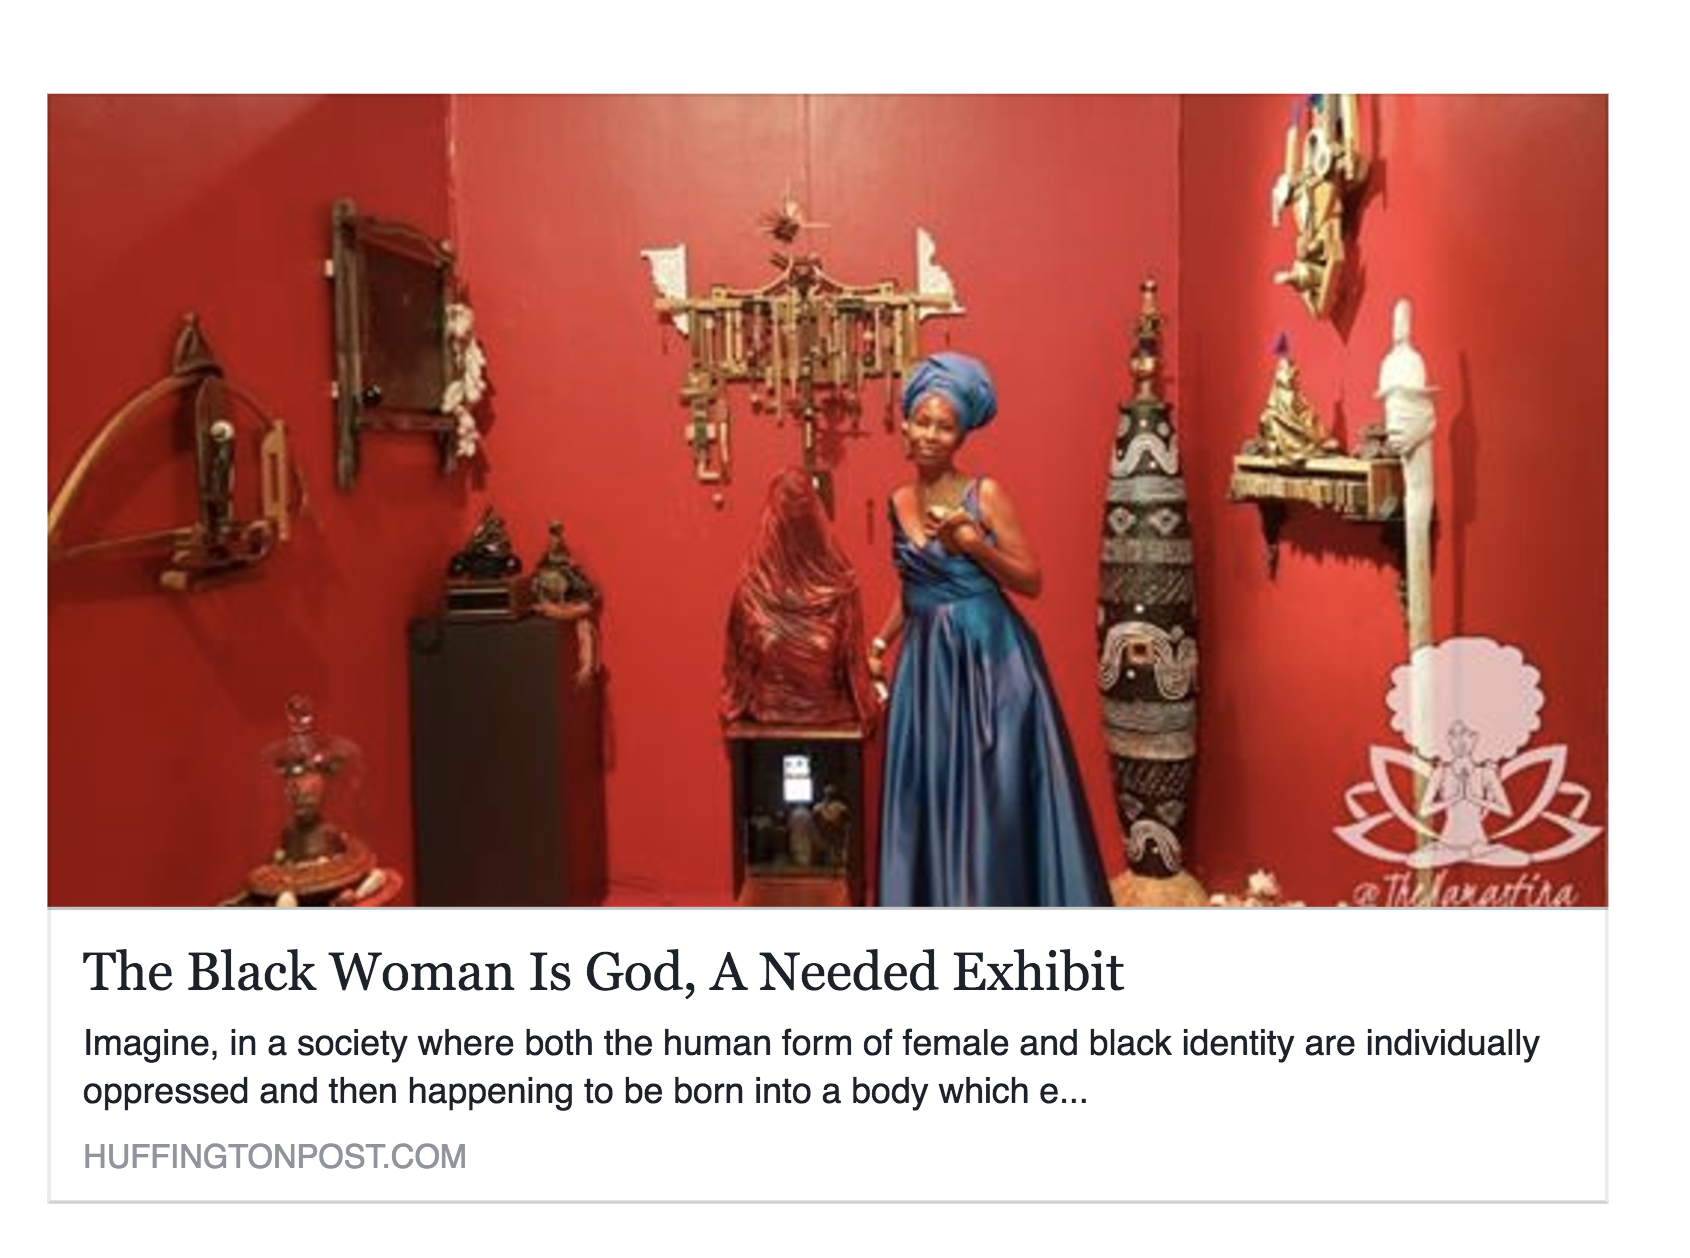 The Black Woman Is God, A Needed Exhibit